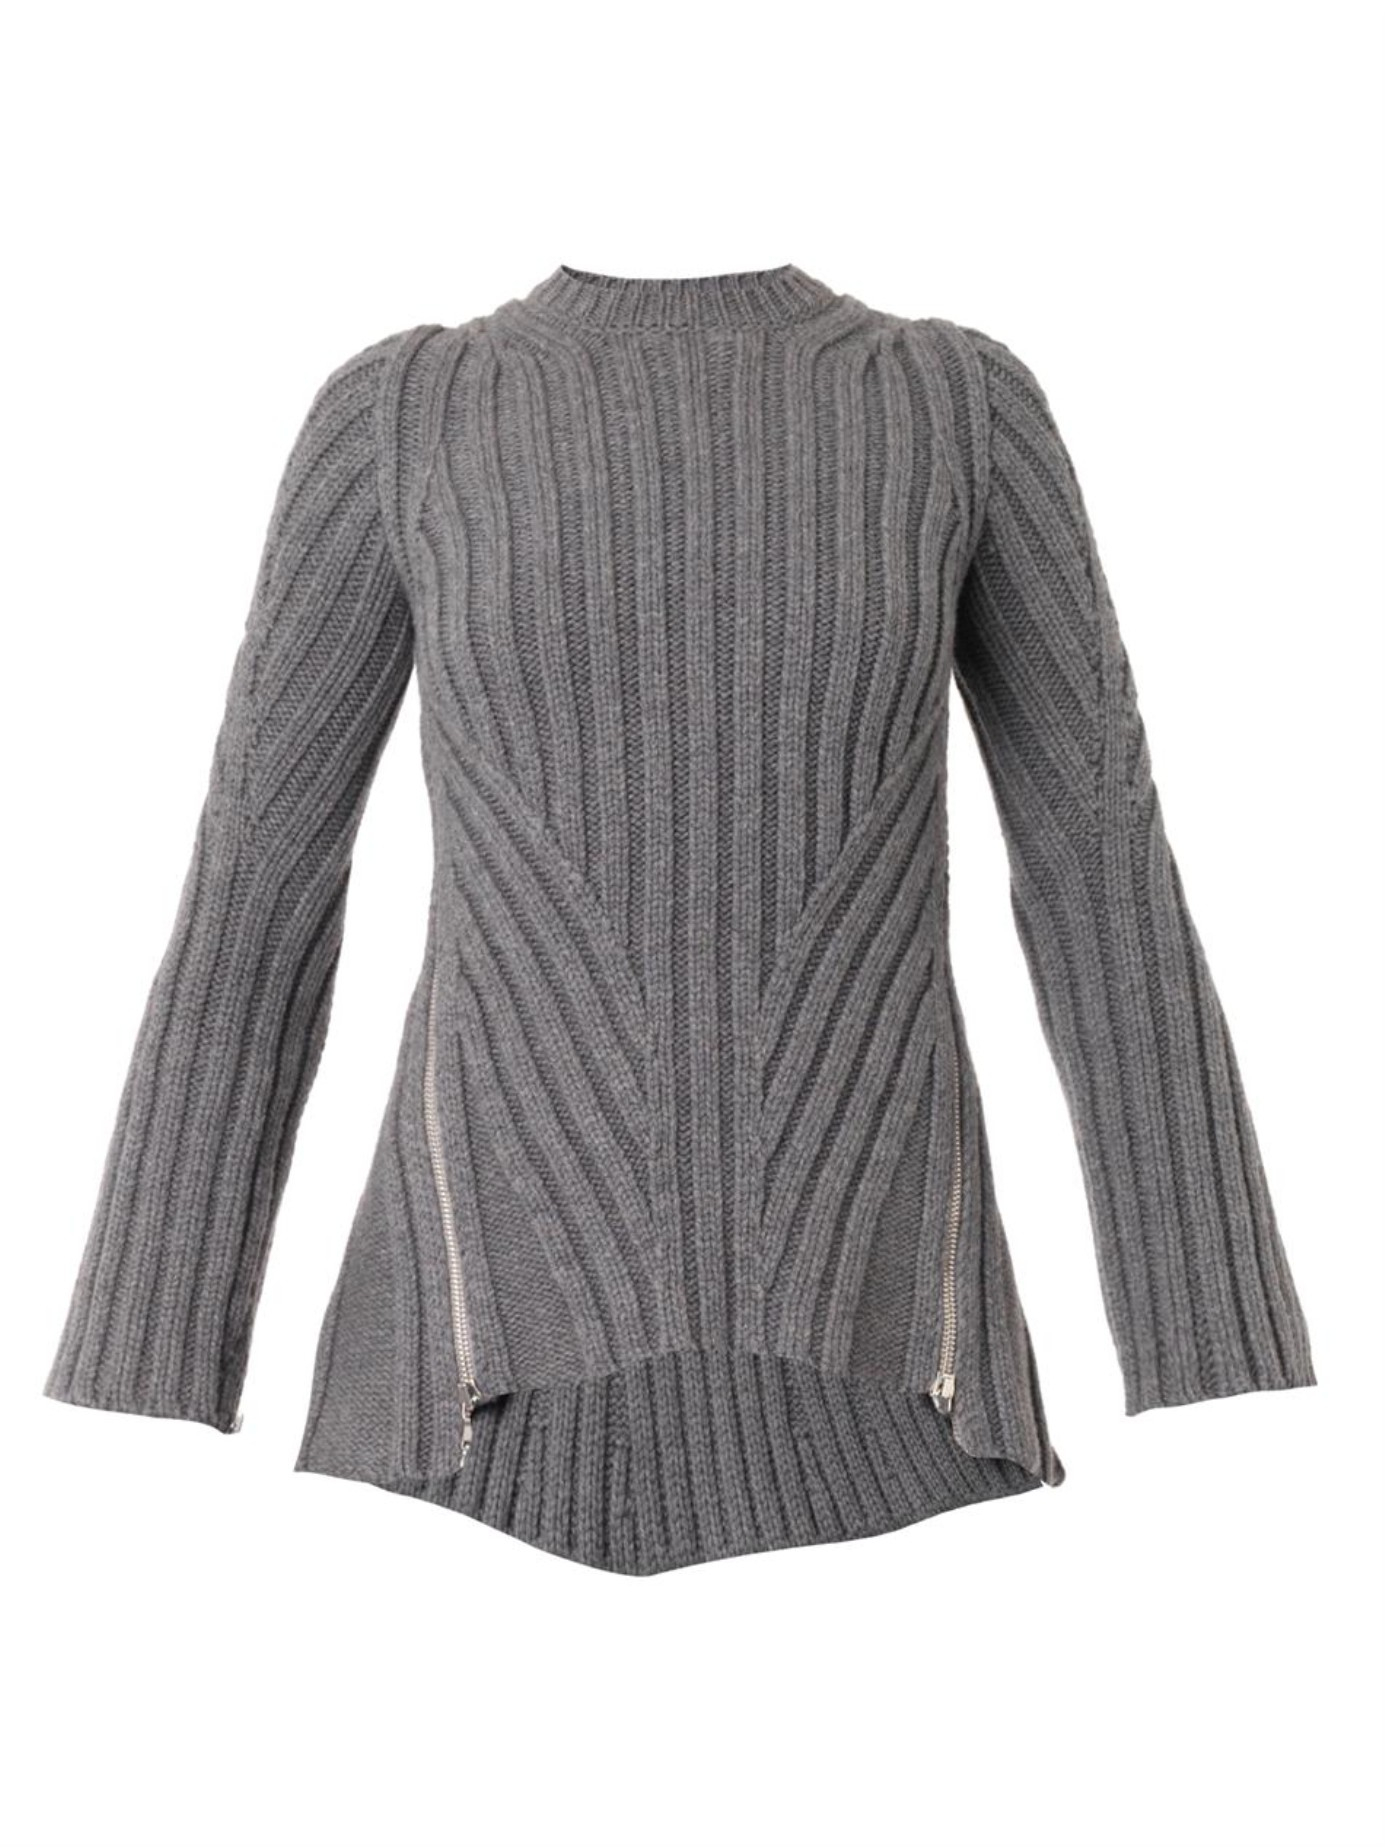 https://cdnb.lystit.com/photos/51cc-2015/04/13/alexander-mcqueen-grey-zip-side-ribbed-knit-sweater-gray-product-4-819463518-normal.jpeg